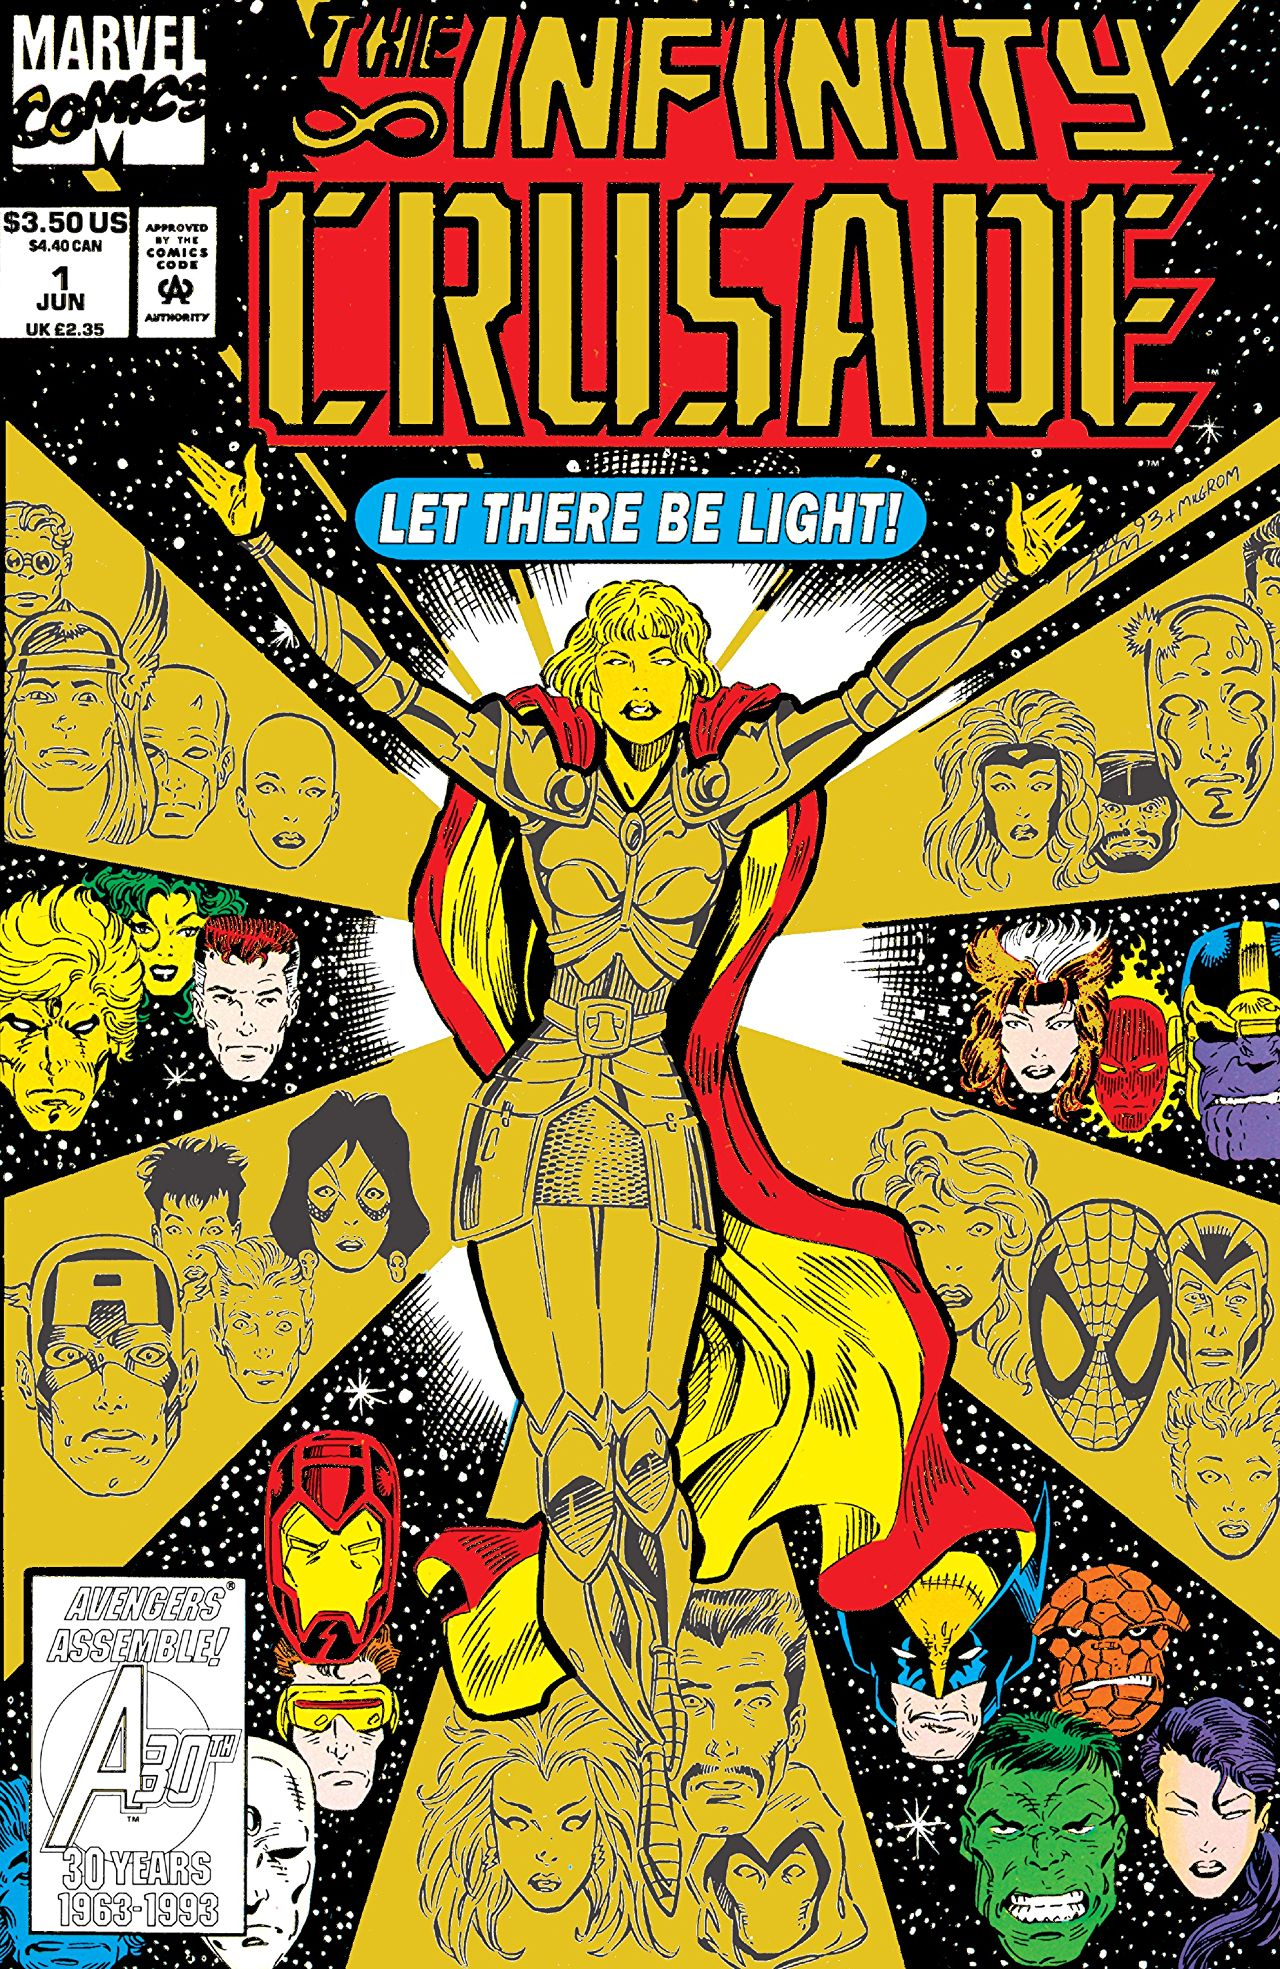 http://vignette3.wikia.nocookie.net/marveldatabase/images/c/c5/Infinity_Crusade_Vol_1_1.jpg/revision/latest?cb=20080320194638